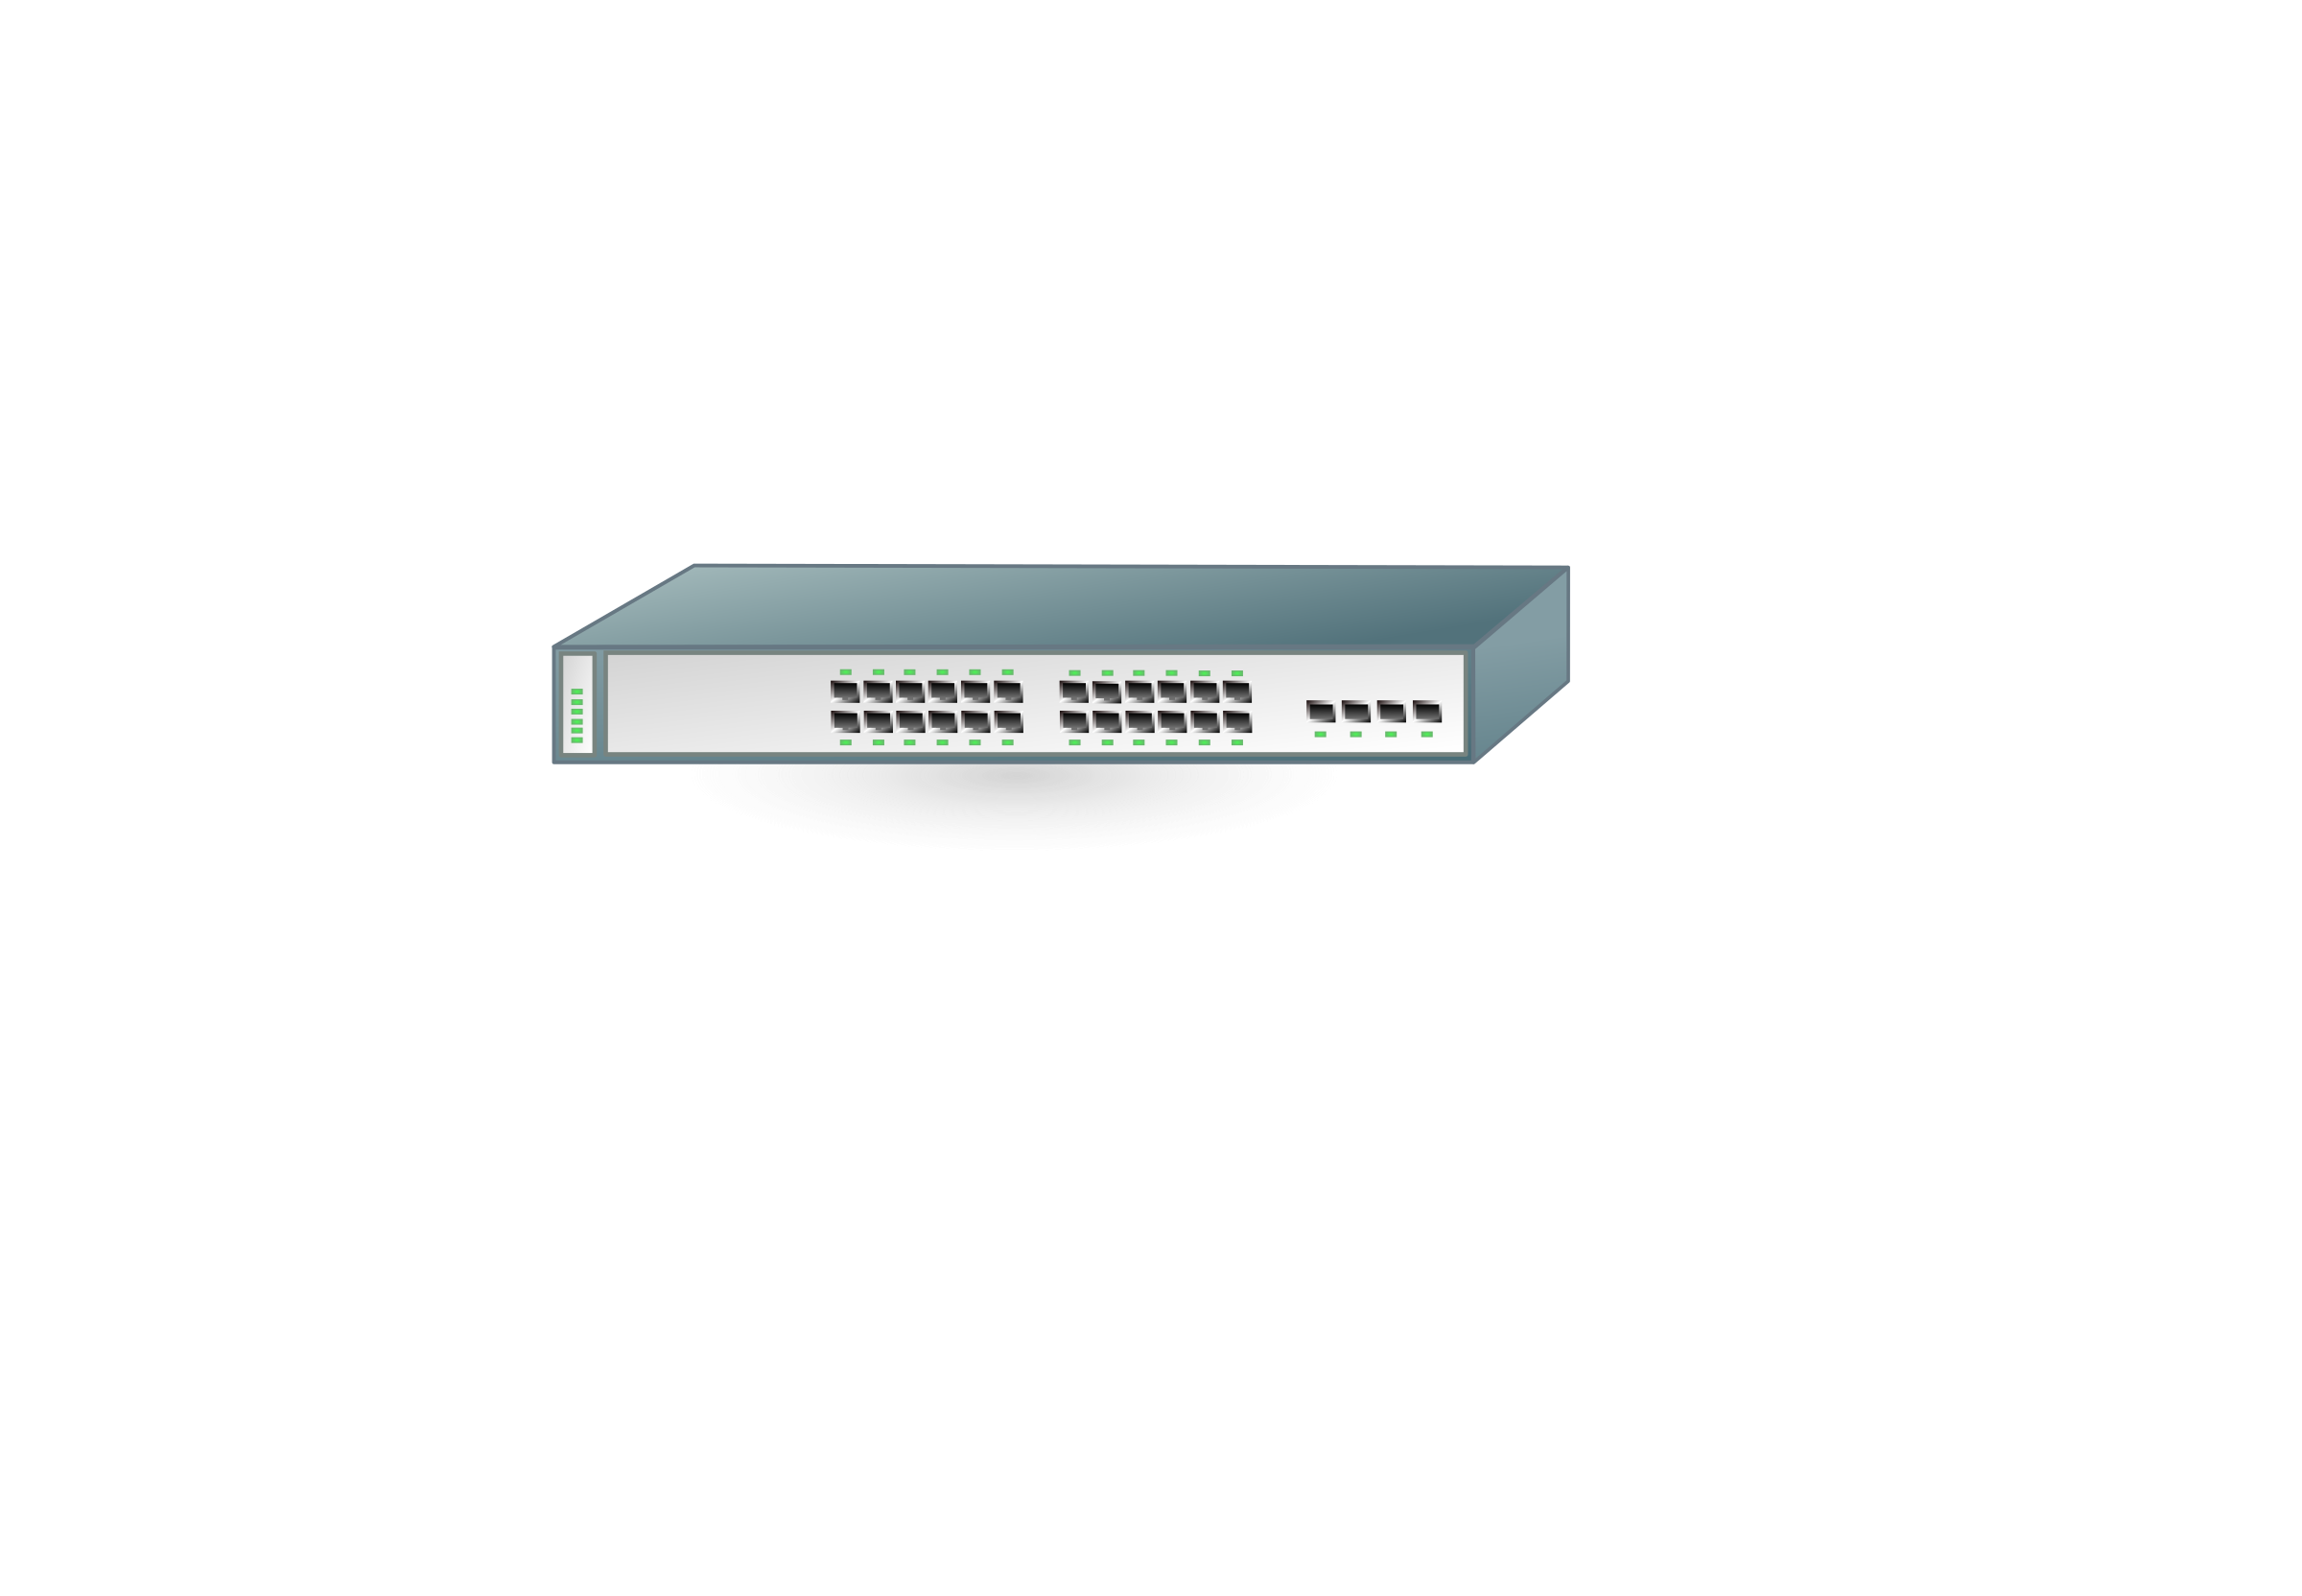 Switch clipart switch cisco. Nico big image png